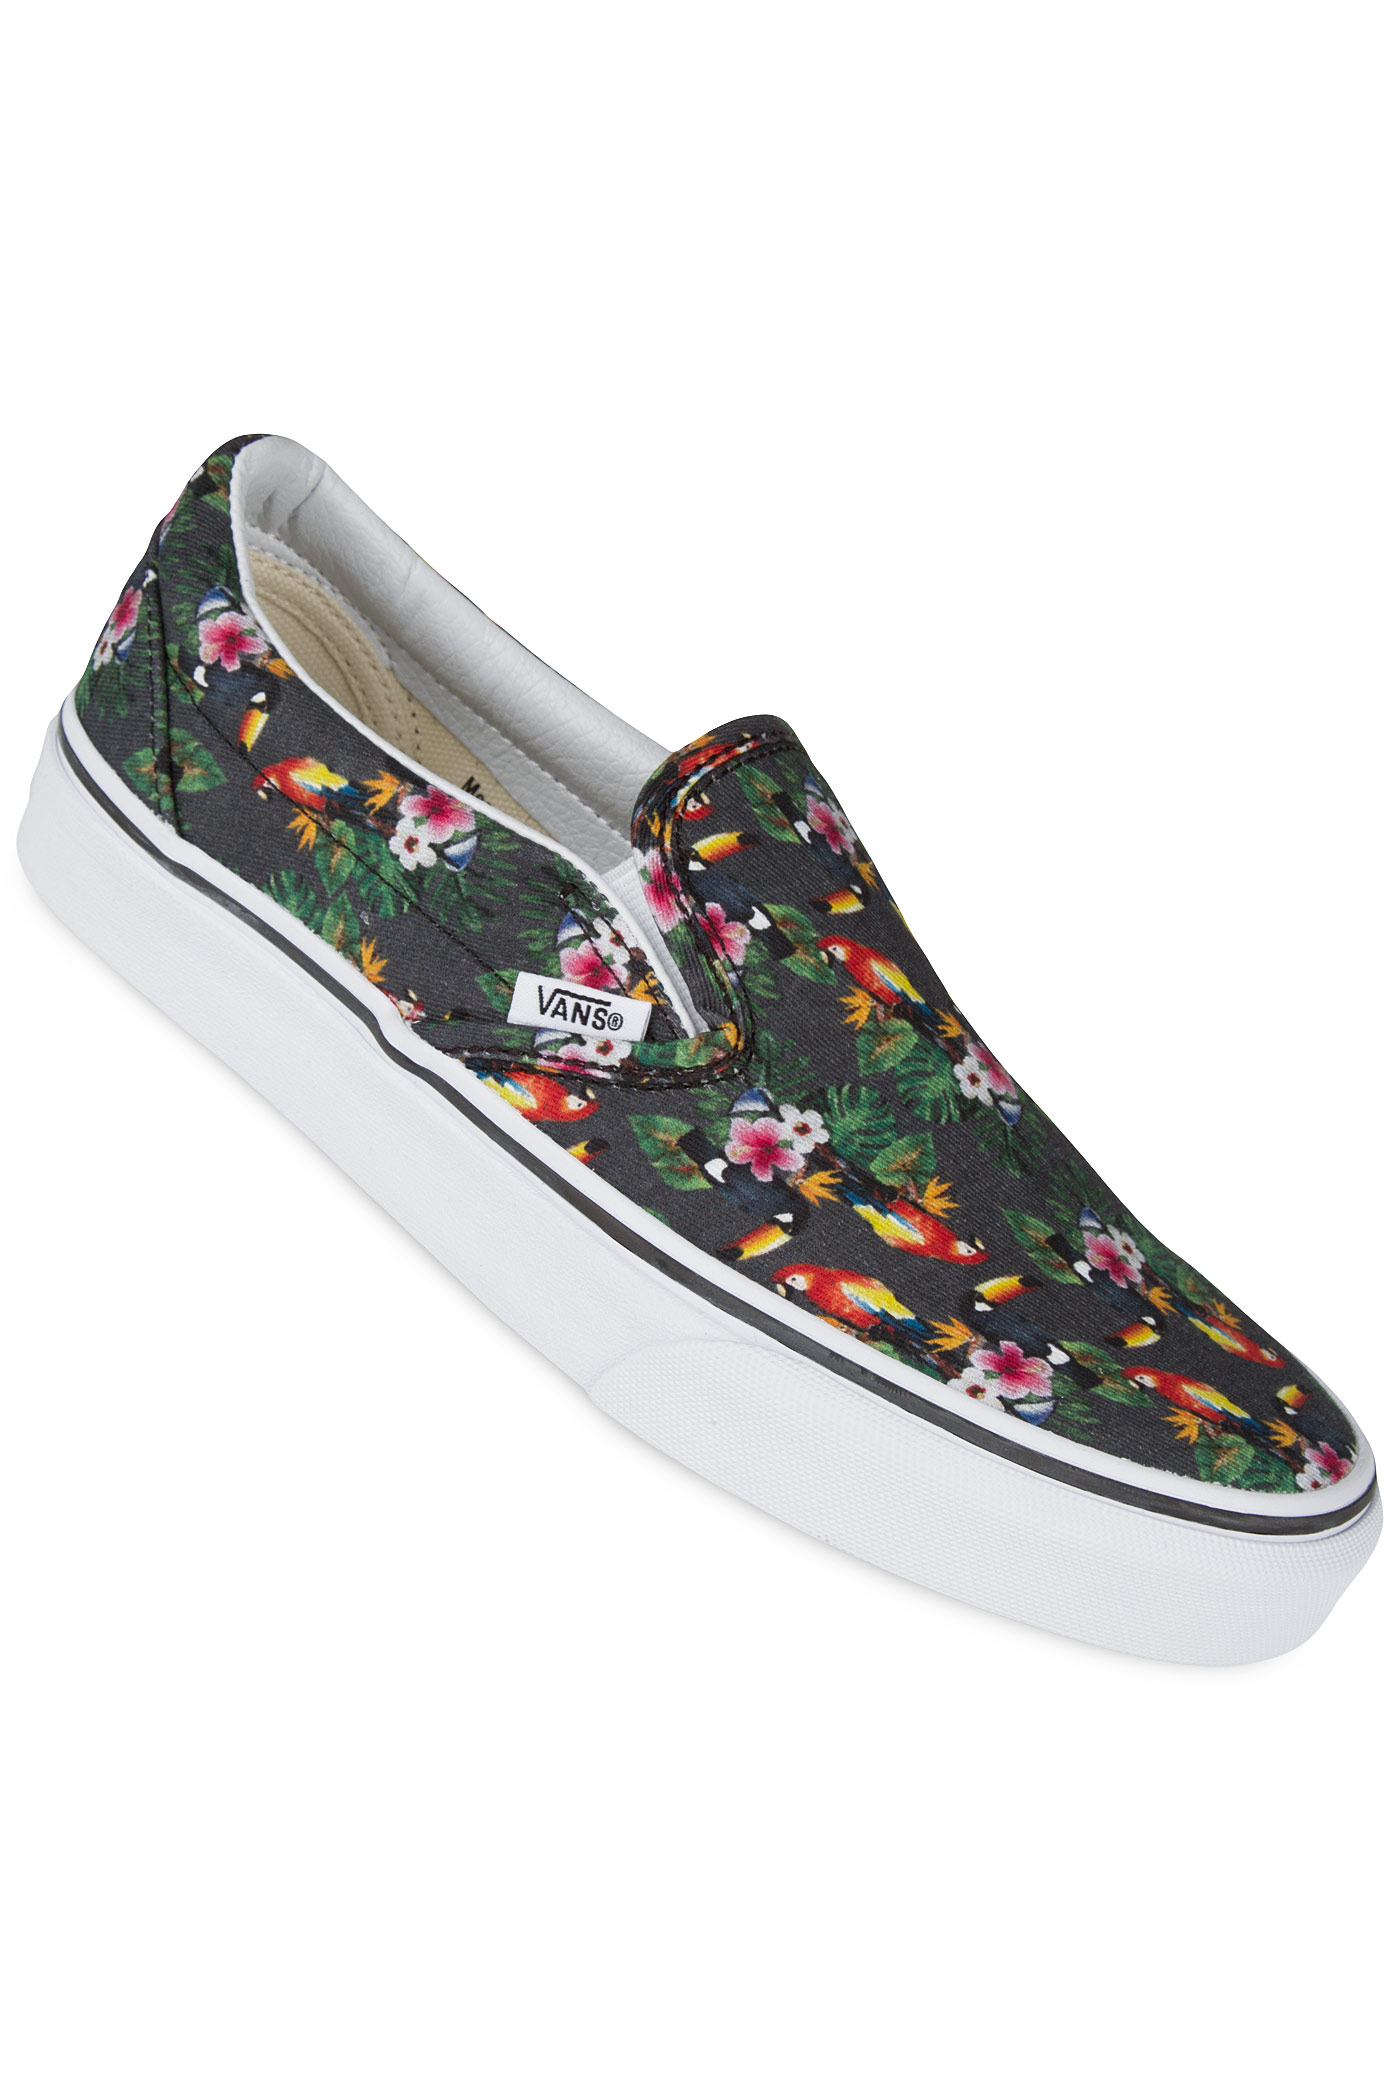 57a935cc3a0 Vans Classic Slip-On Shoe women (chambray parrot true white) buy at ...